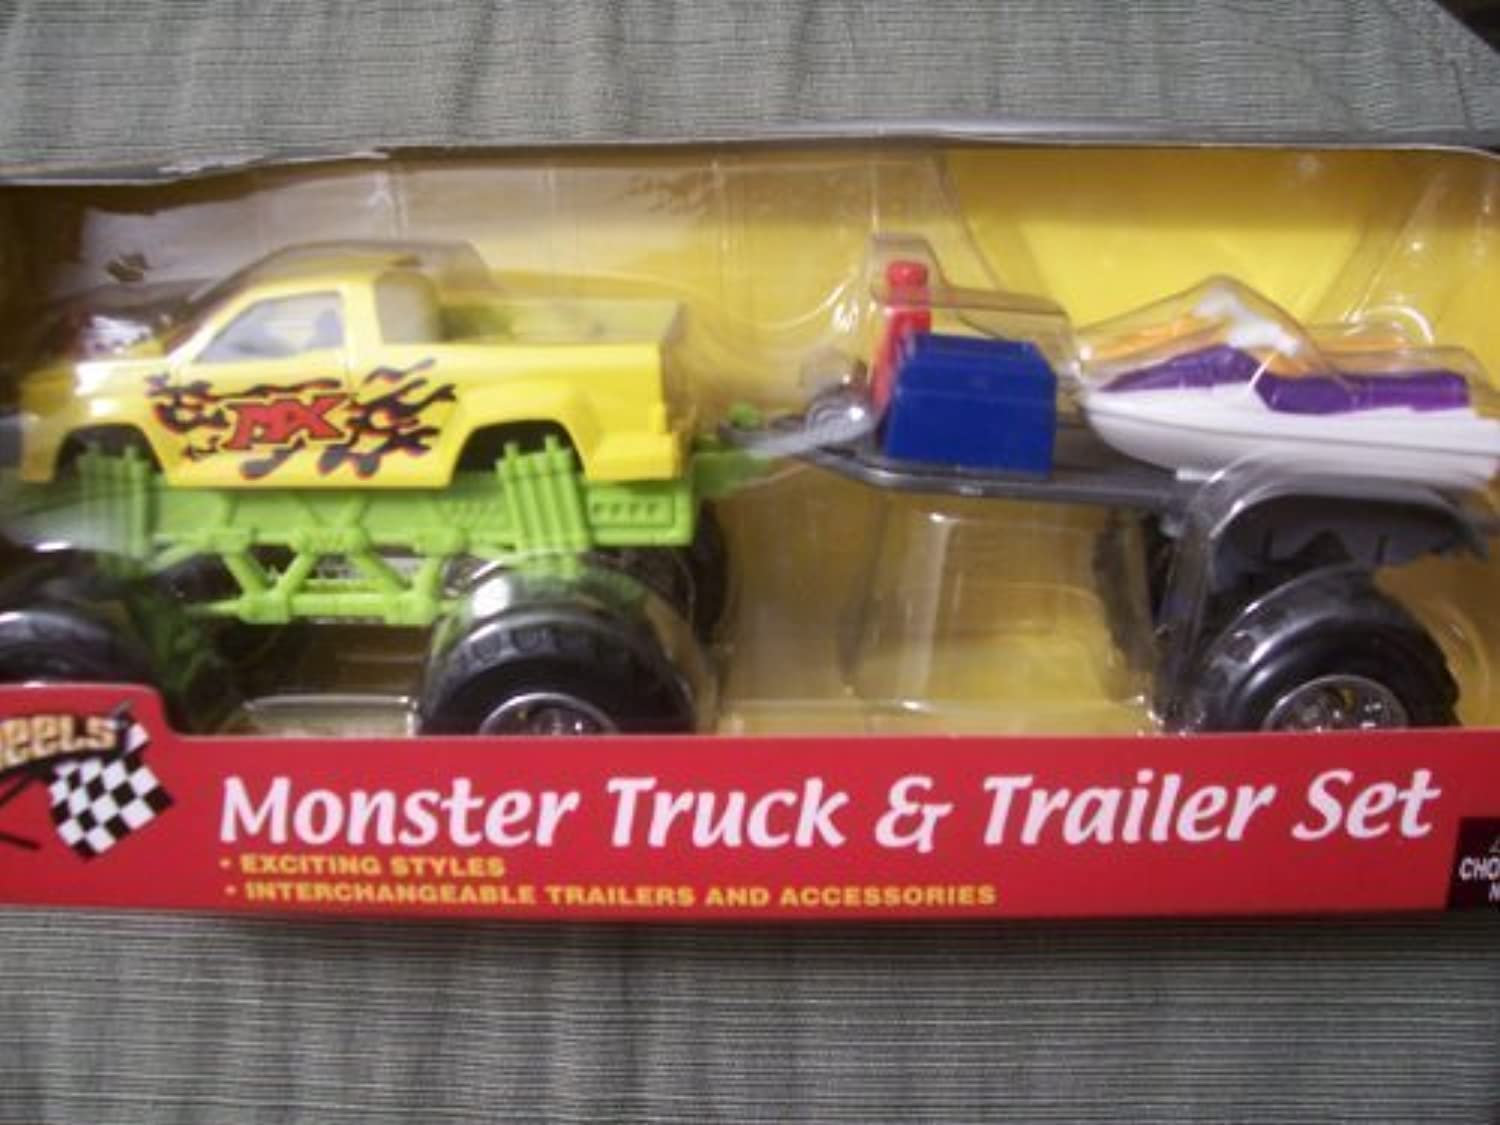 Speed Wheels Monster Truck & Trailer Set (Gelb MX Truck with Gelb & lila Personal Water Craft) by Speed Wheels